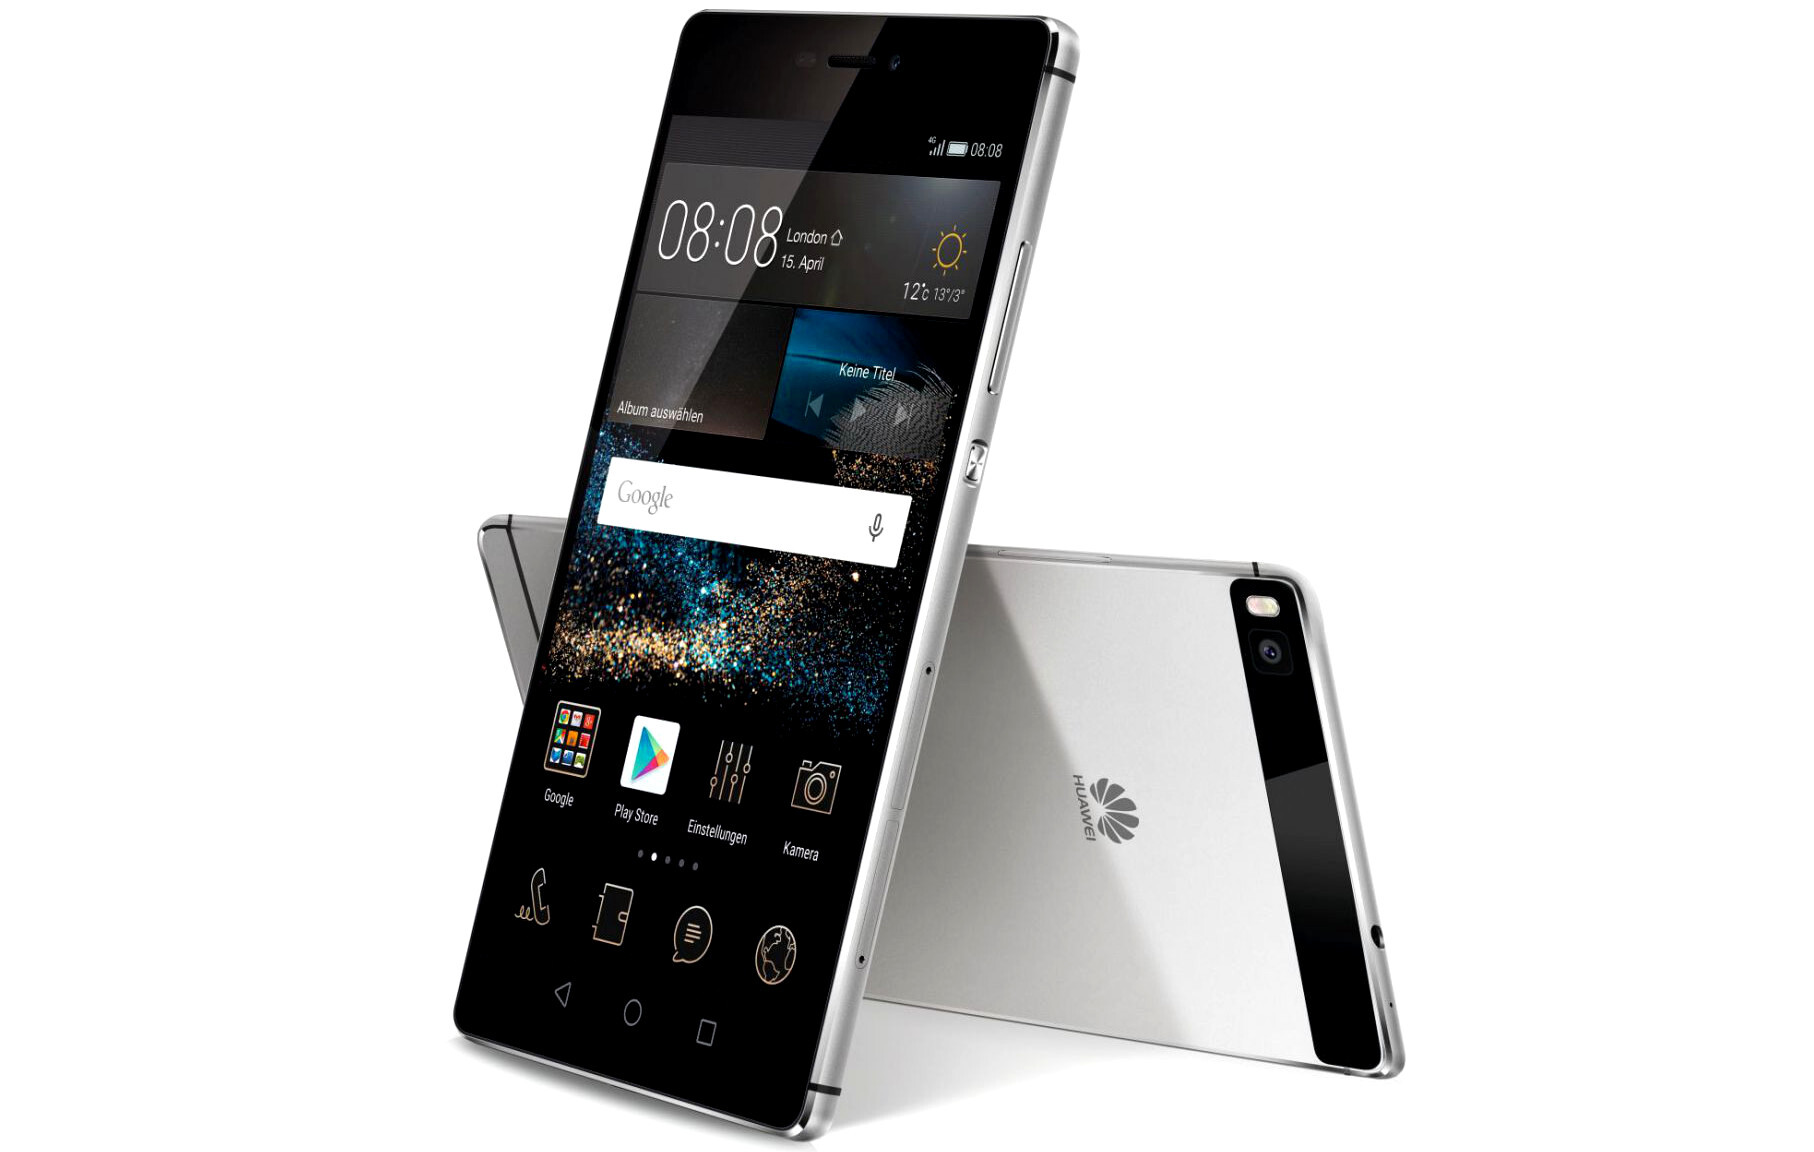 huawei p8 unveiled 5 2 inch super slim flagship with full metal unibody and innovative rgbw. Black Bedroom Furniture Sets. Home Design Ideas